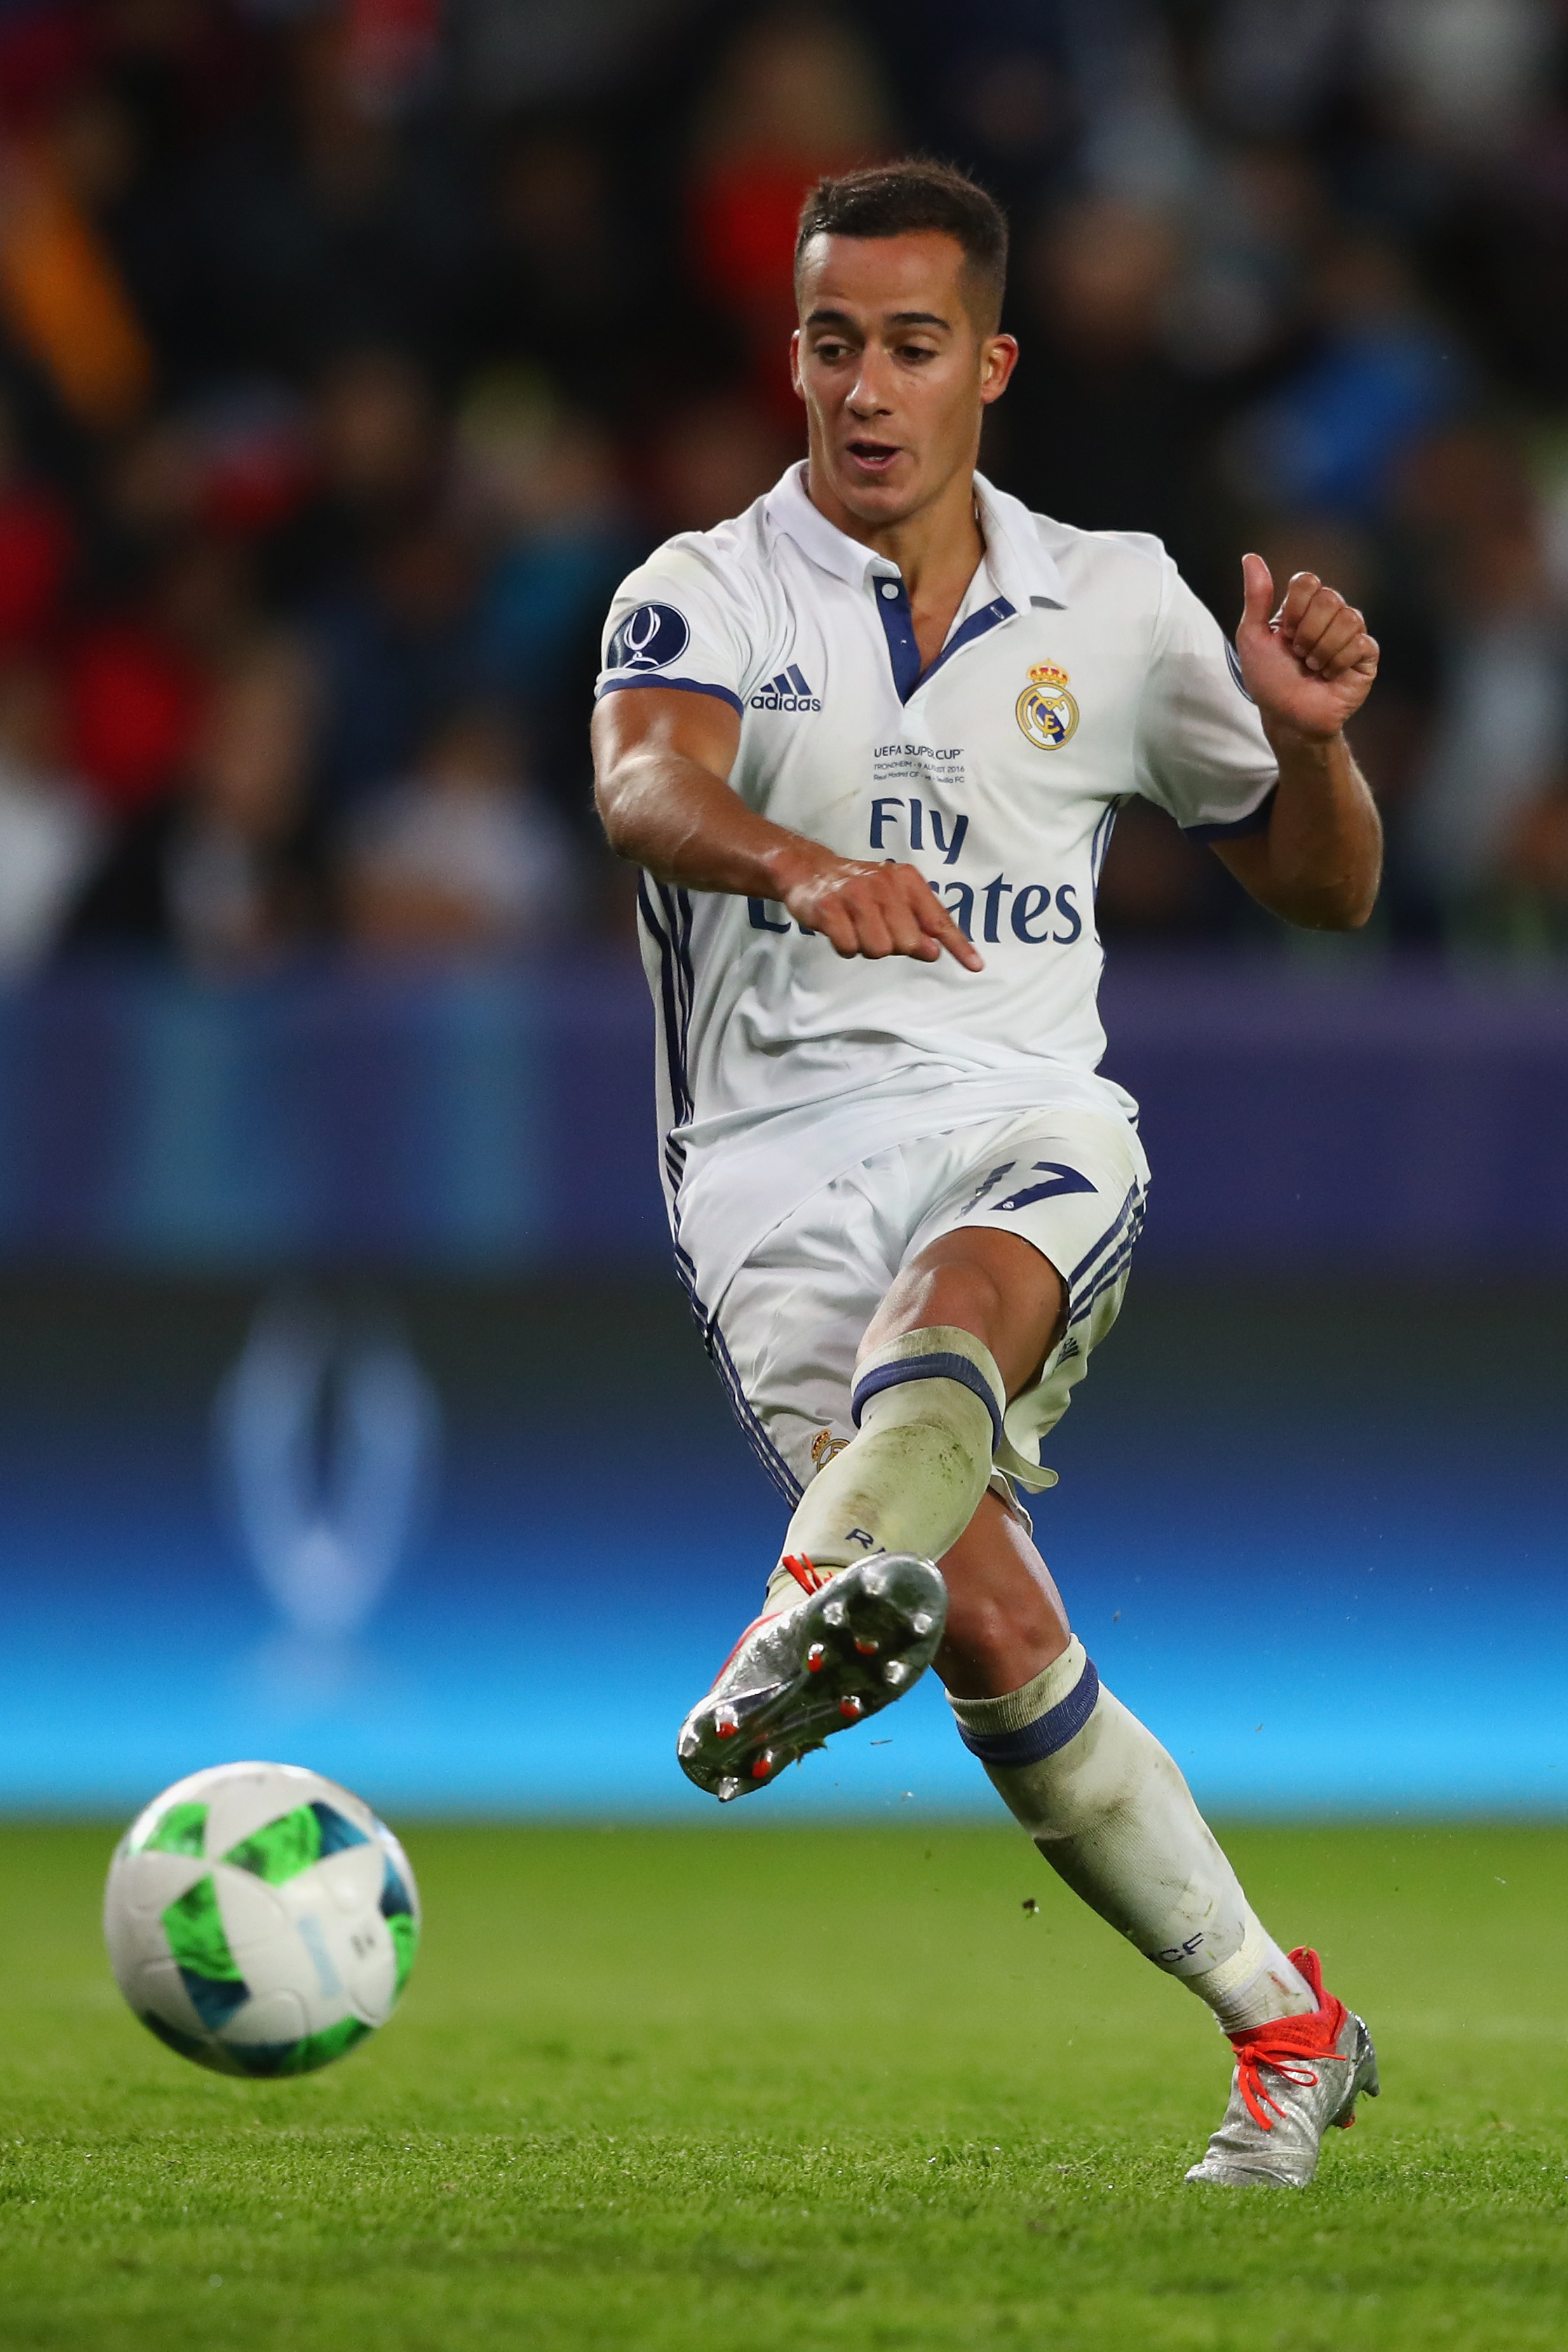 PREVIEW: Real Madrid wants to keep the leadership against ...